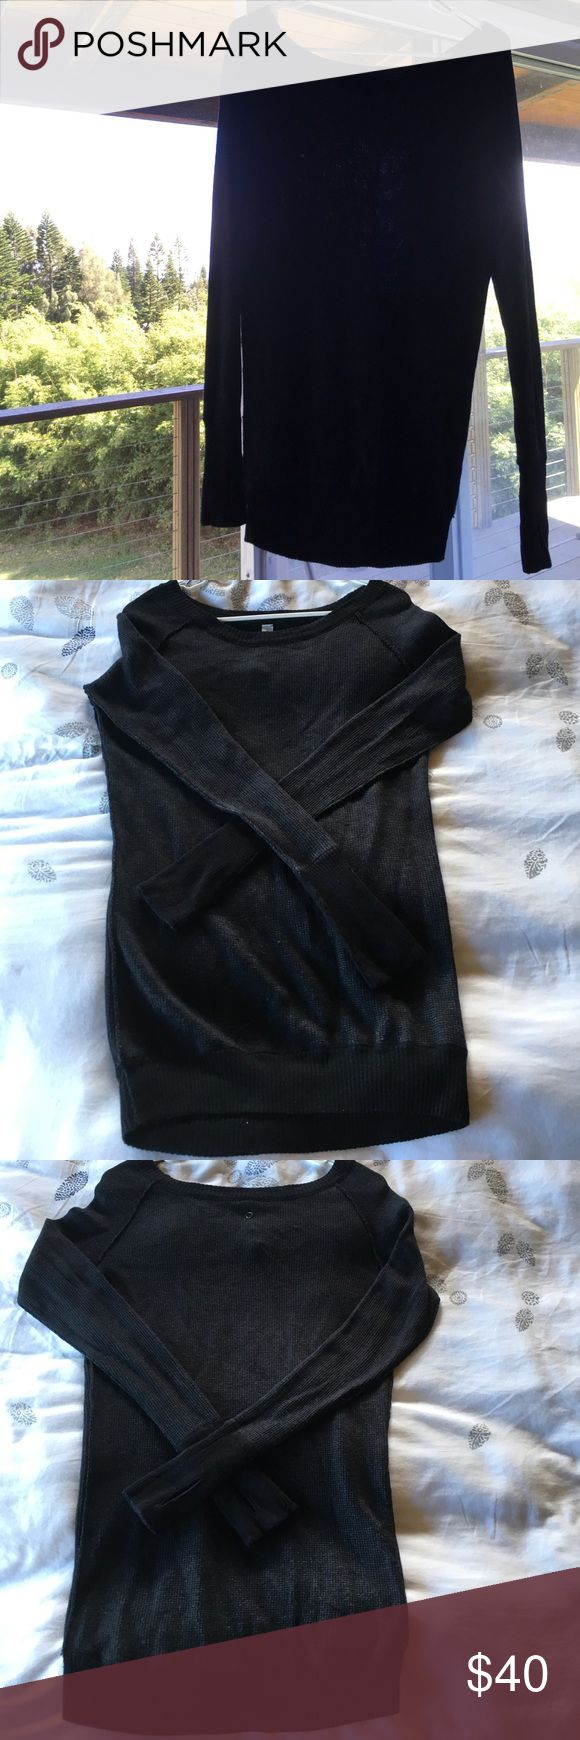 "Lululemon sweater Gently worn size 6 Lululemon sweater, scoop neckline, dark charcoal grey almost black in color, from front neckline to front hemline 24 inches. I'm 5'1"" and it hits right at upper thigh for me and covers most of my butt. Good for cool summer night coverup or warm fall. lululemon athletica Sweaters Crew & Scoop Necks"